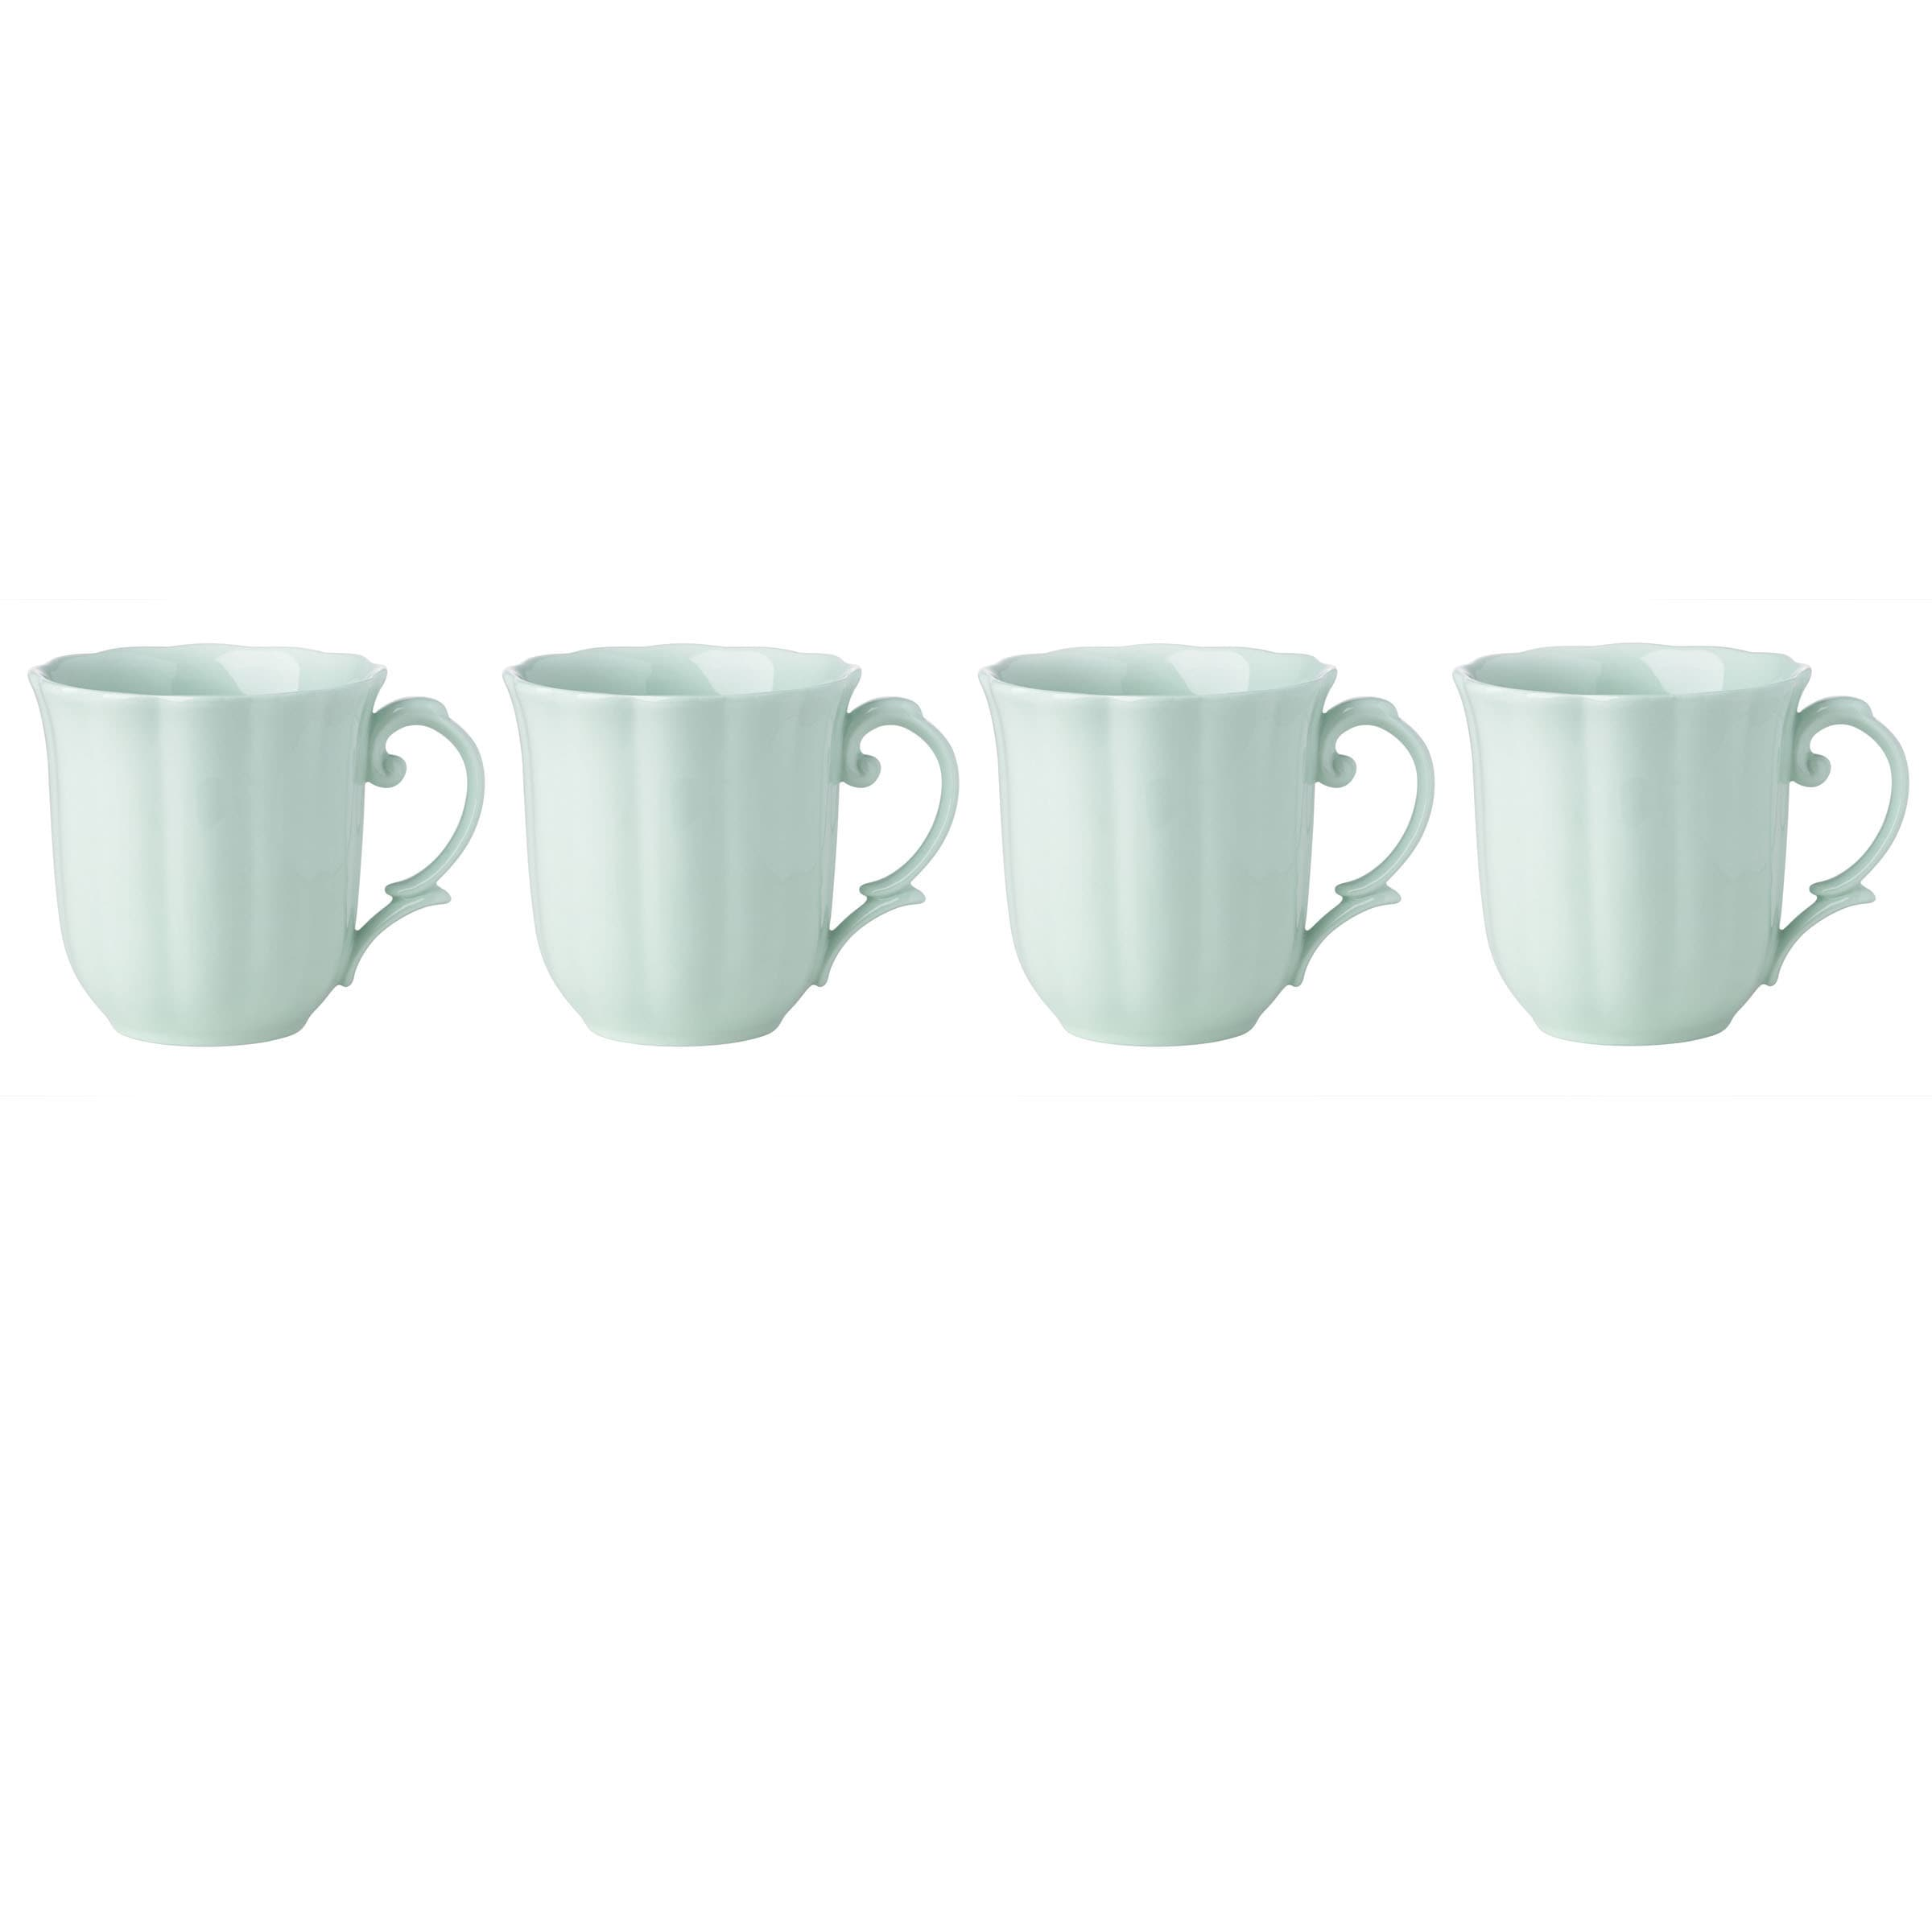 Lenox Butterfly Meadow Mint Green Porcelain Dessert Mug S...